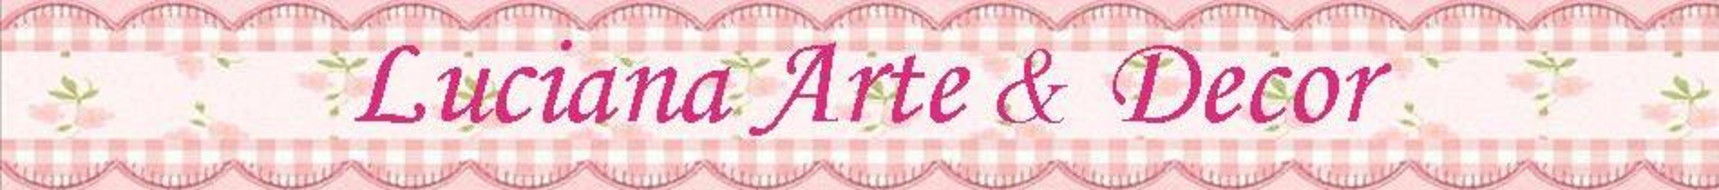 Lu Arte & Decor